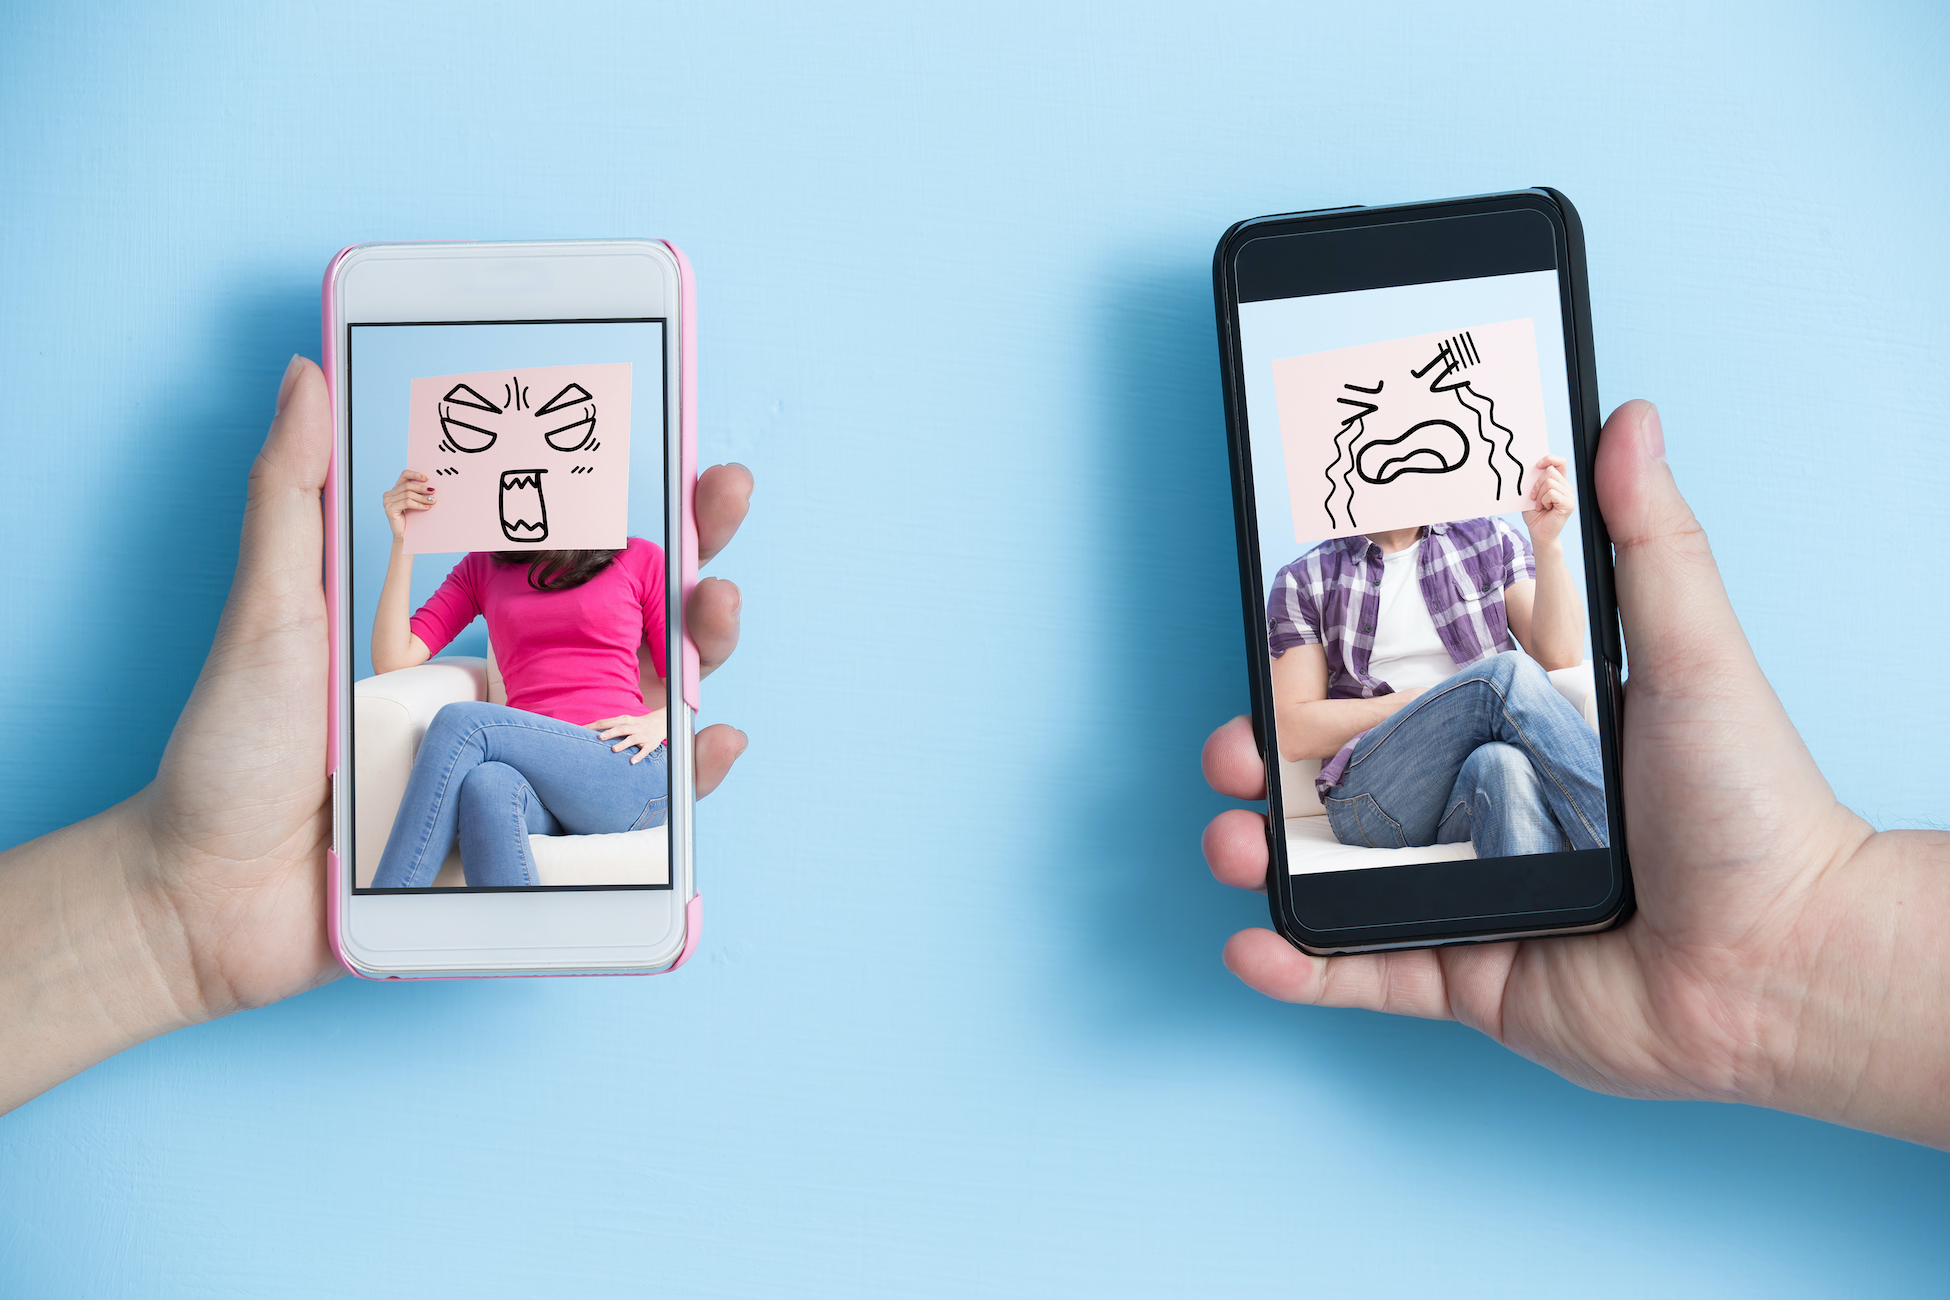 Two phones depict angry and sad emotions on their screens